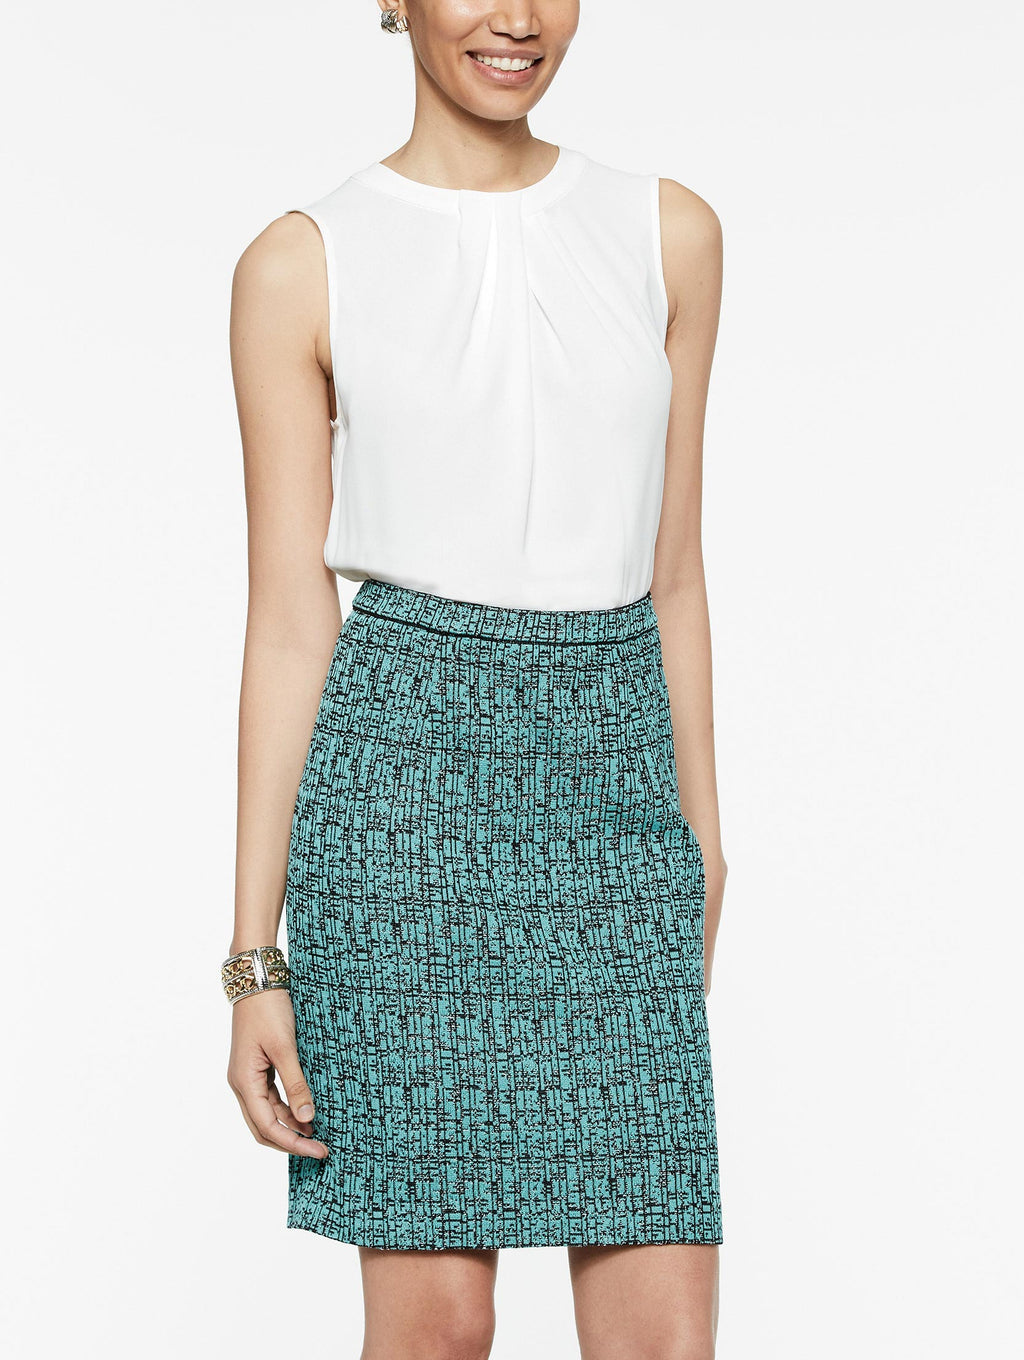 Crepe de Chine and Abstract Jacquard Sheath Dress